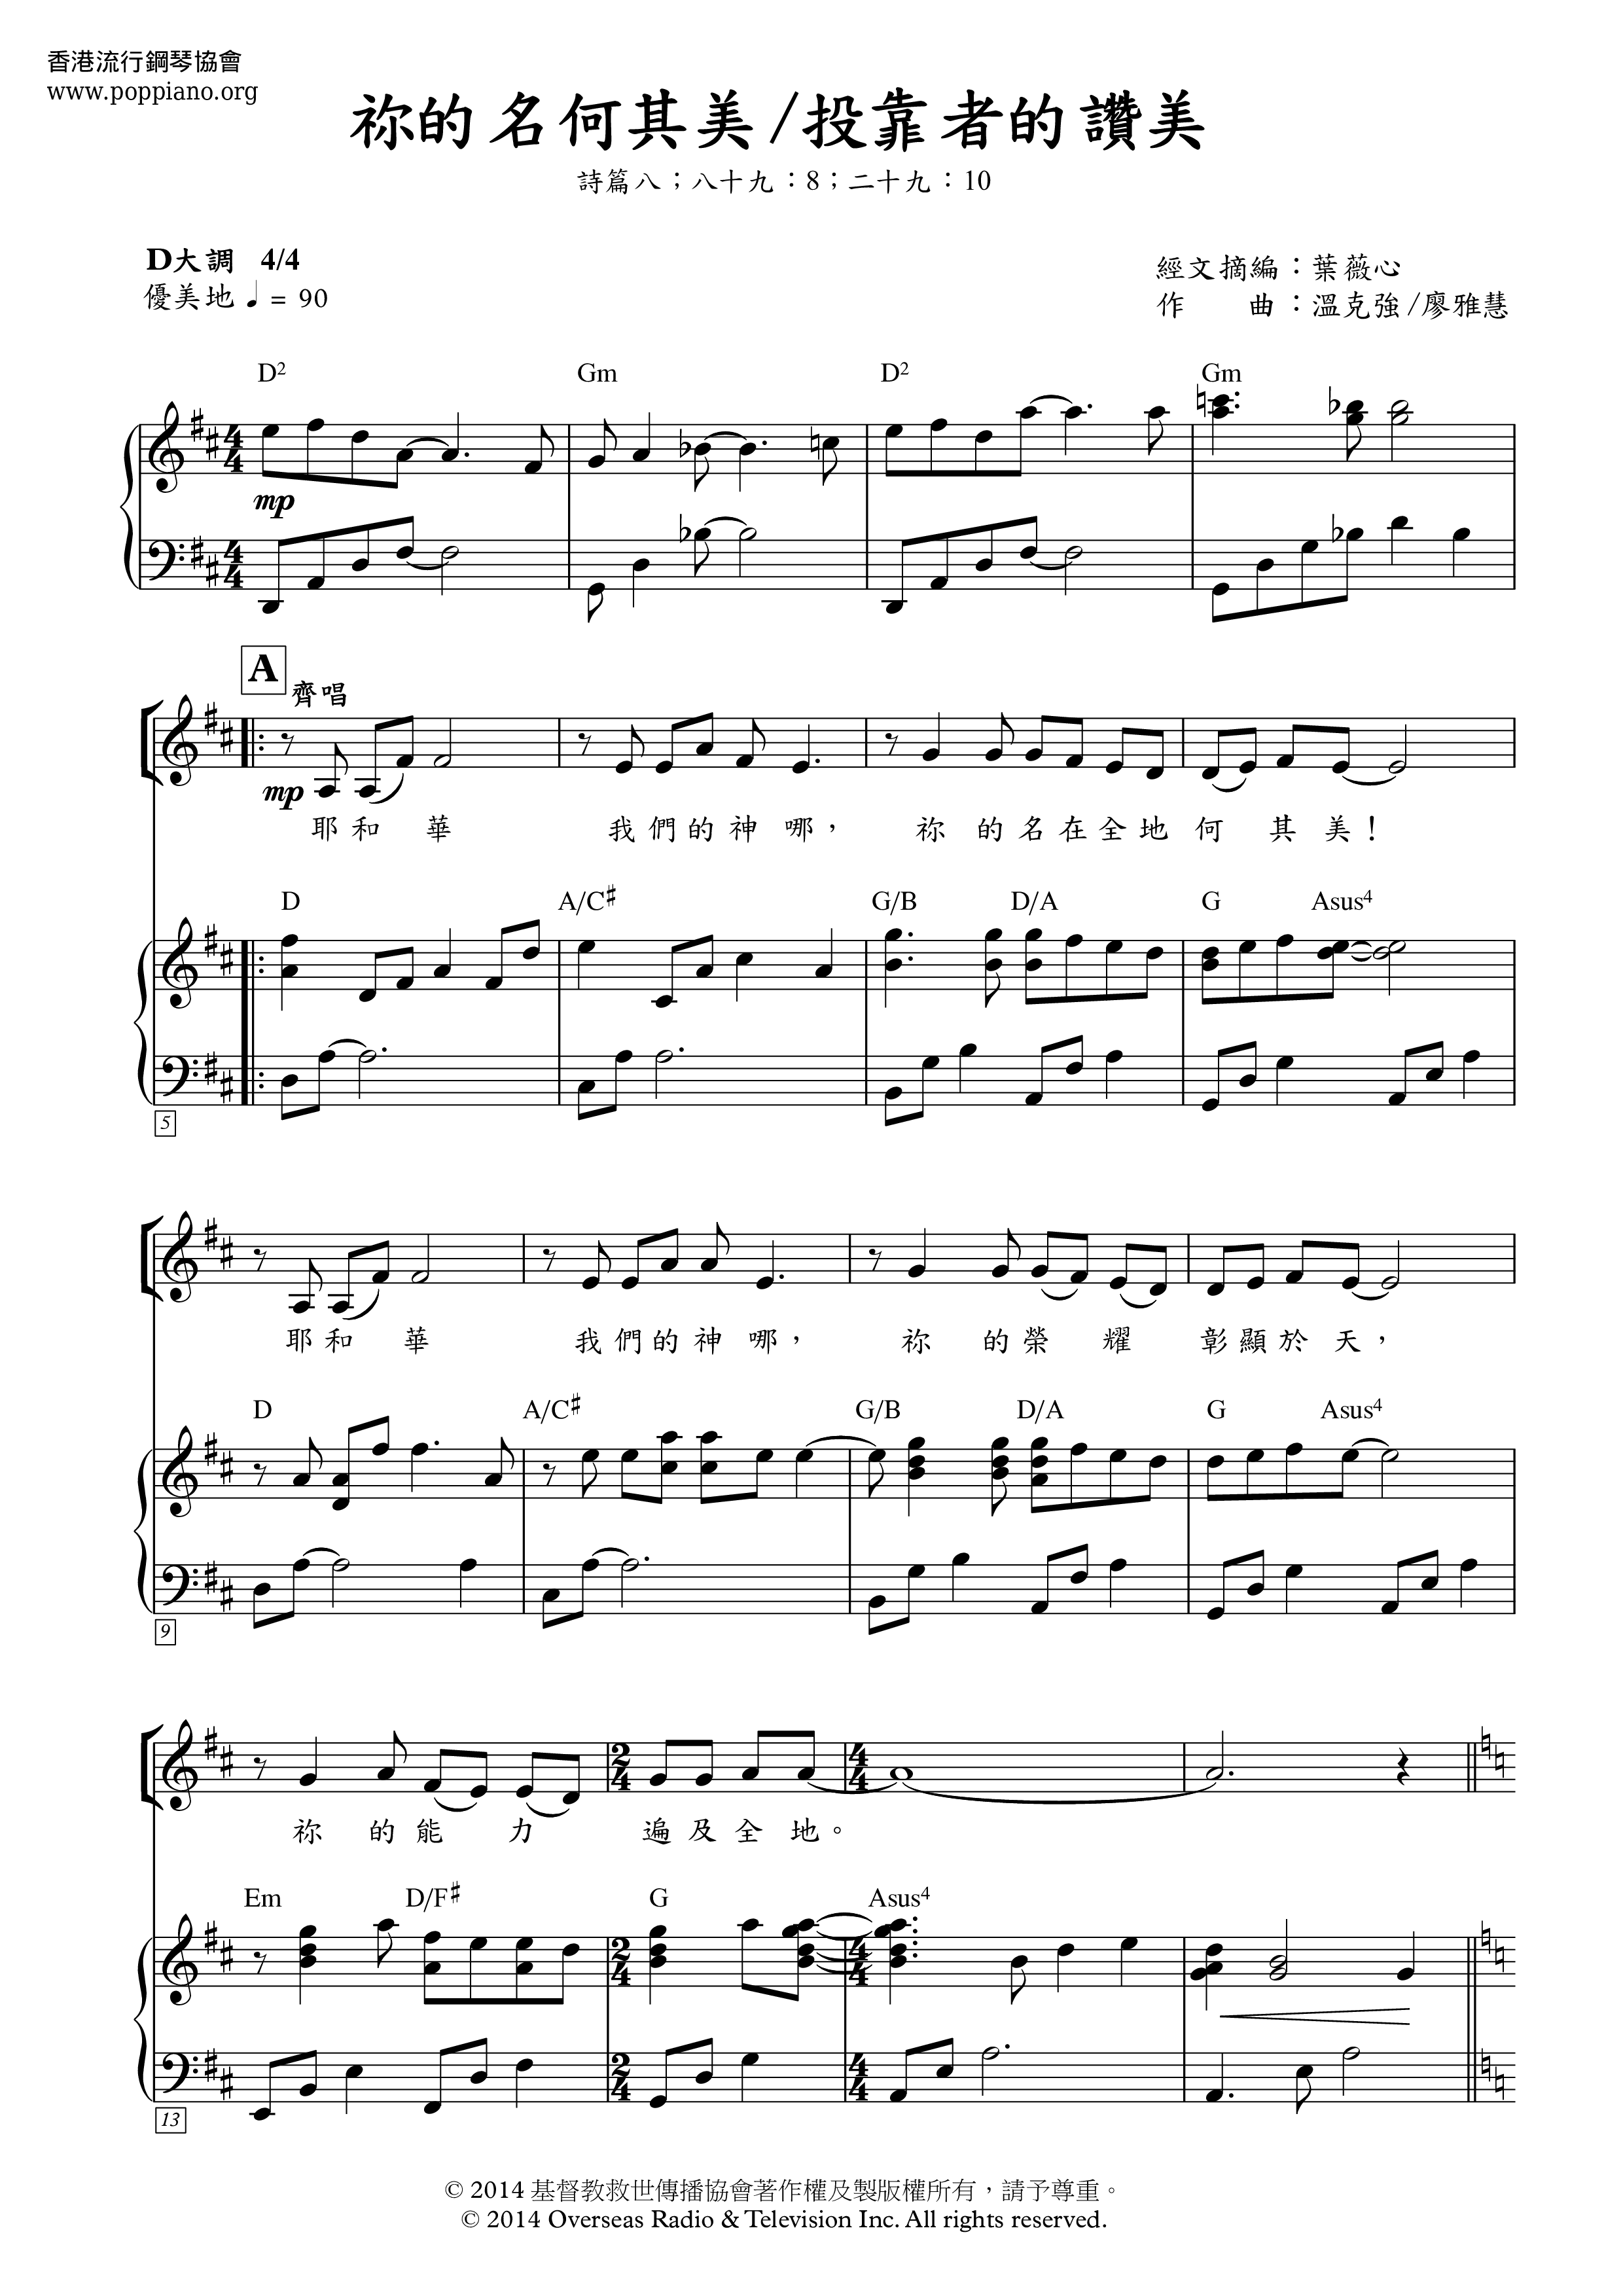 Hymn Your Beautiful Name Sheet Music Pdf Free Score Download,Grey Paint Colors For Living Room Sherwin Williams